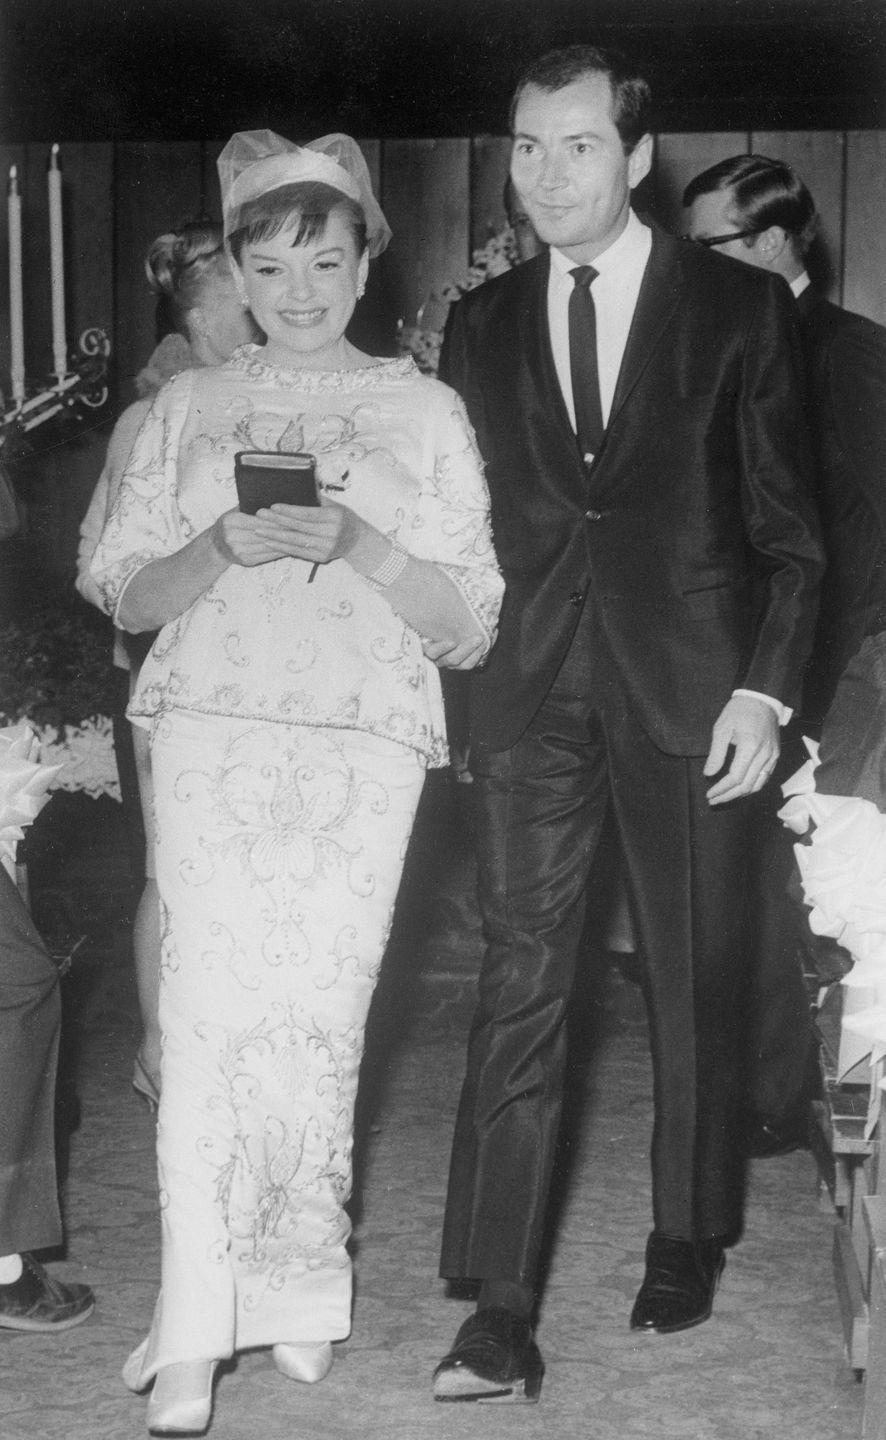 <p>Judy Garland married her second husband, Mark Herron, in a small ceremony that took place at 1:30 a.m. in a Las Vegas chapel. A reception was then held at the Sahara Hotel. </p>